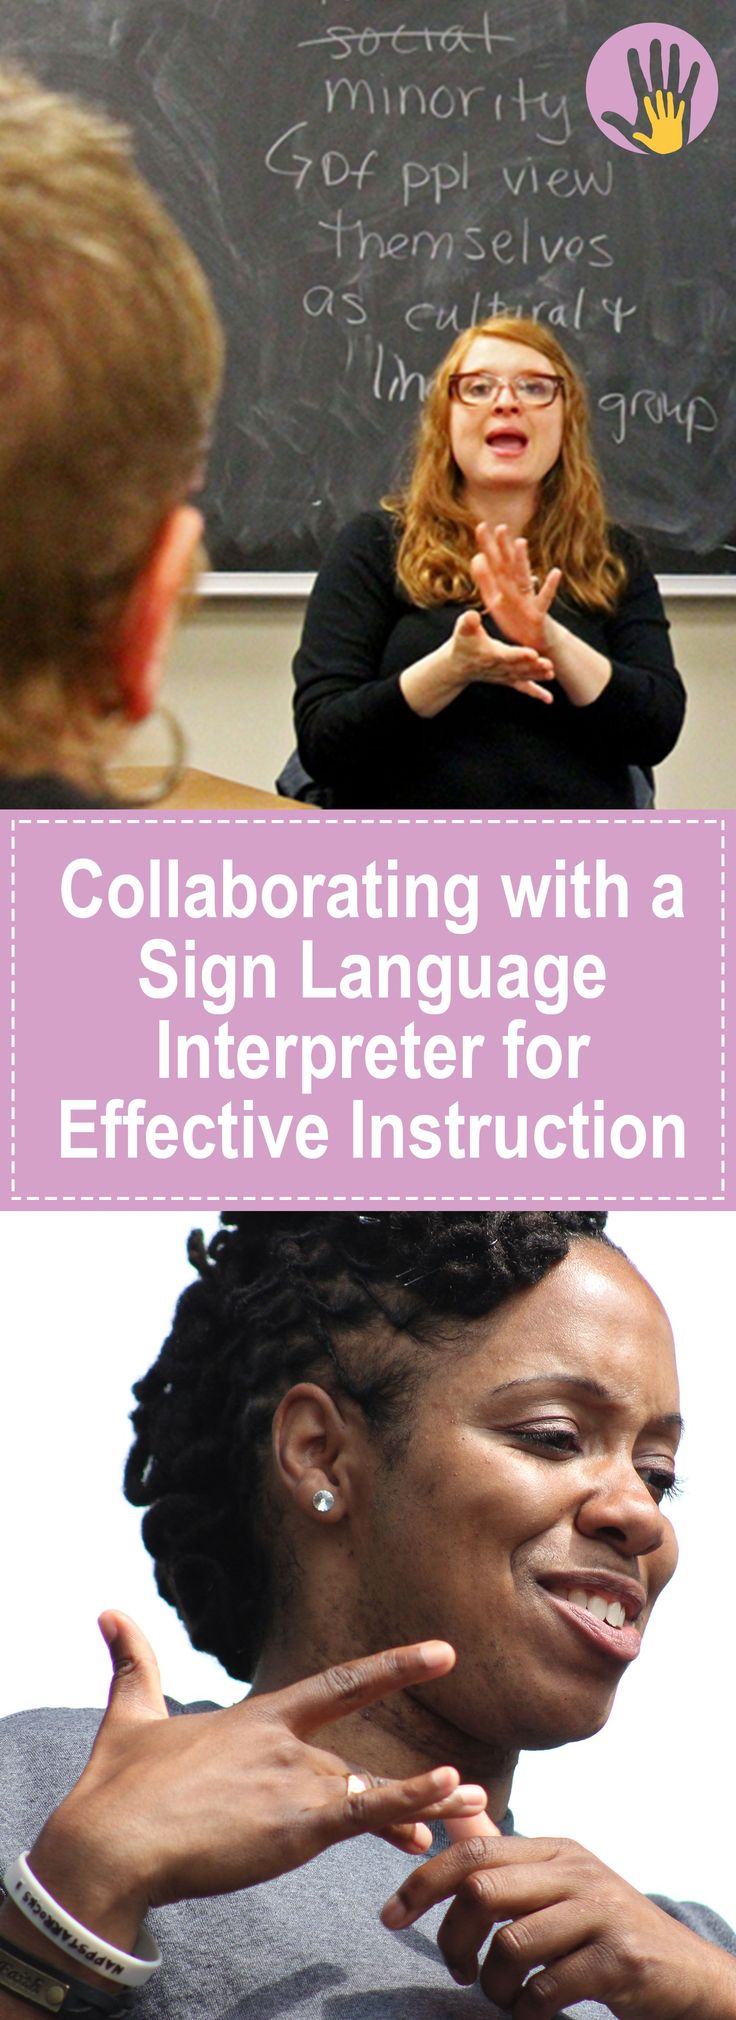 Collaborating with a Sign Language Interpreter for Effective Instruction